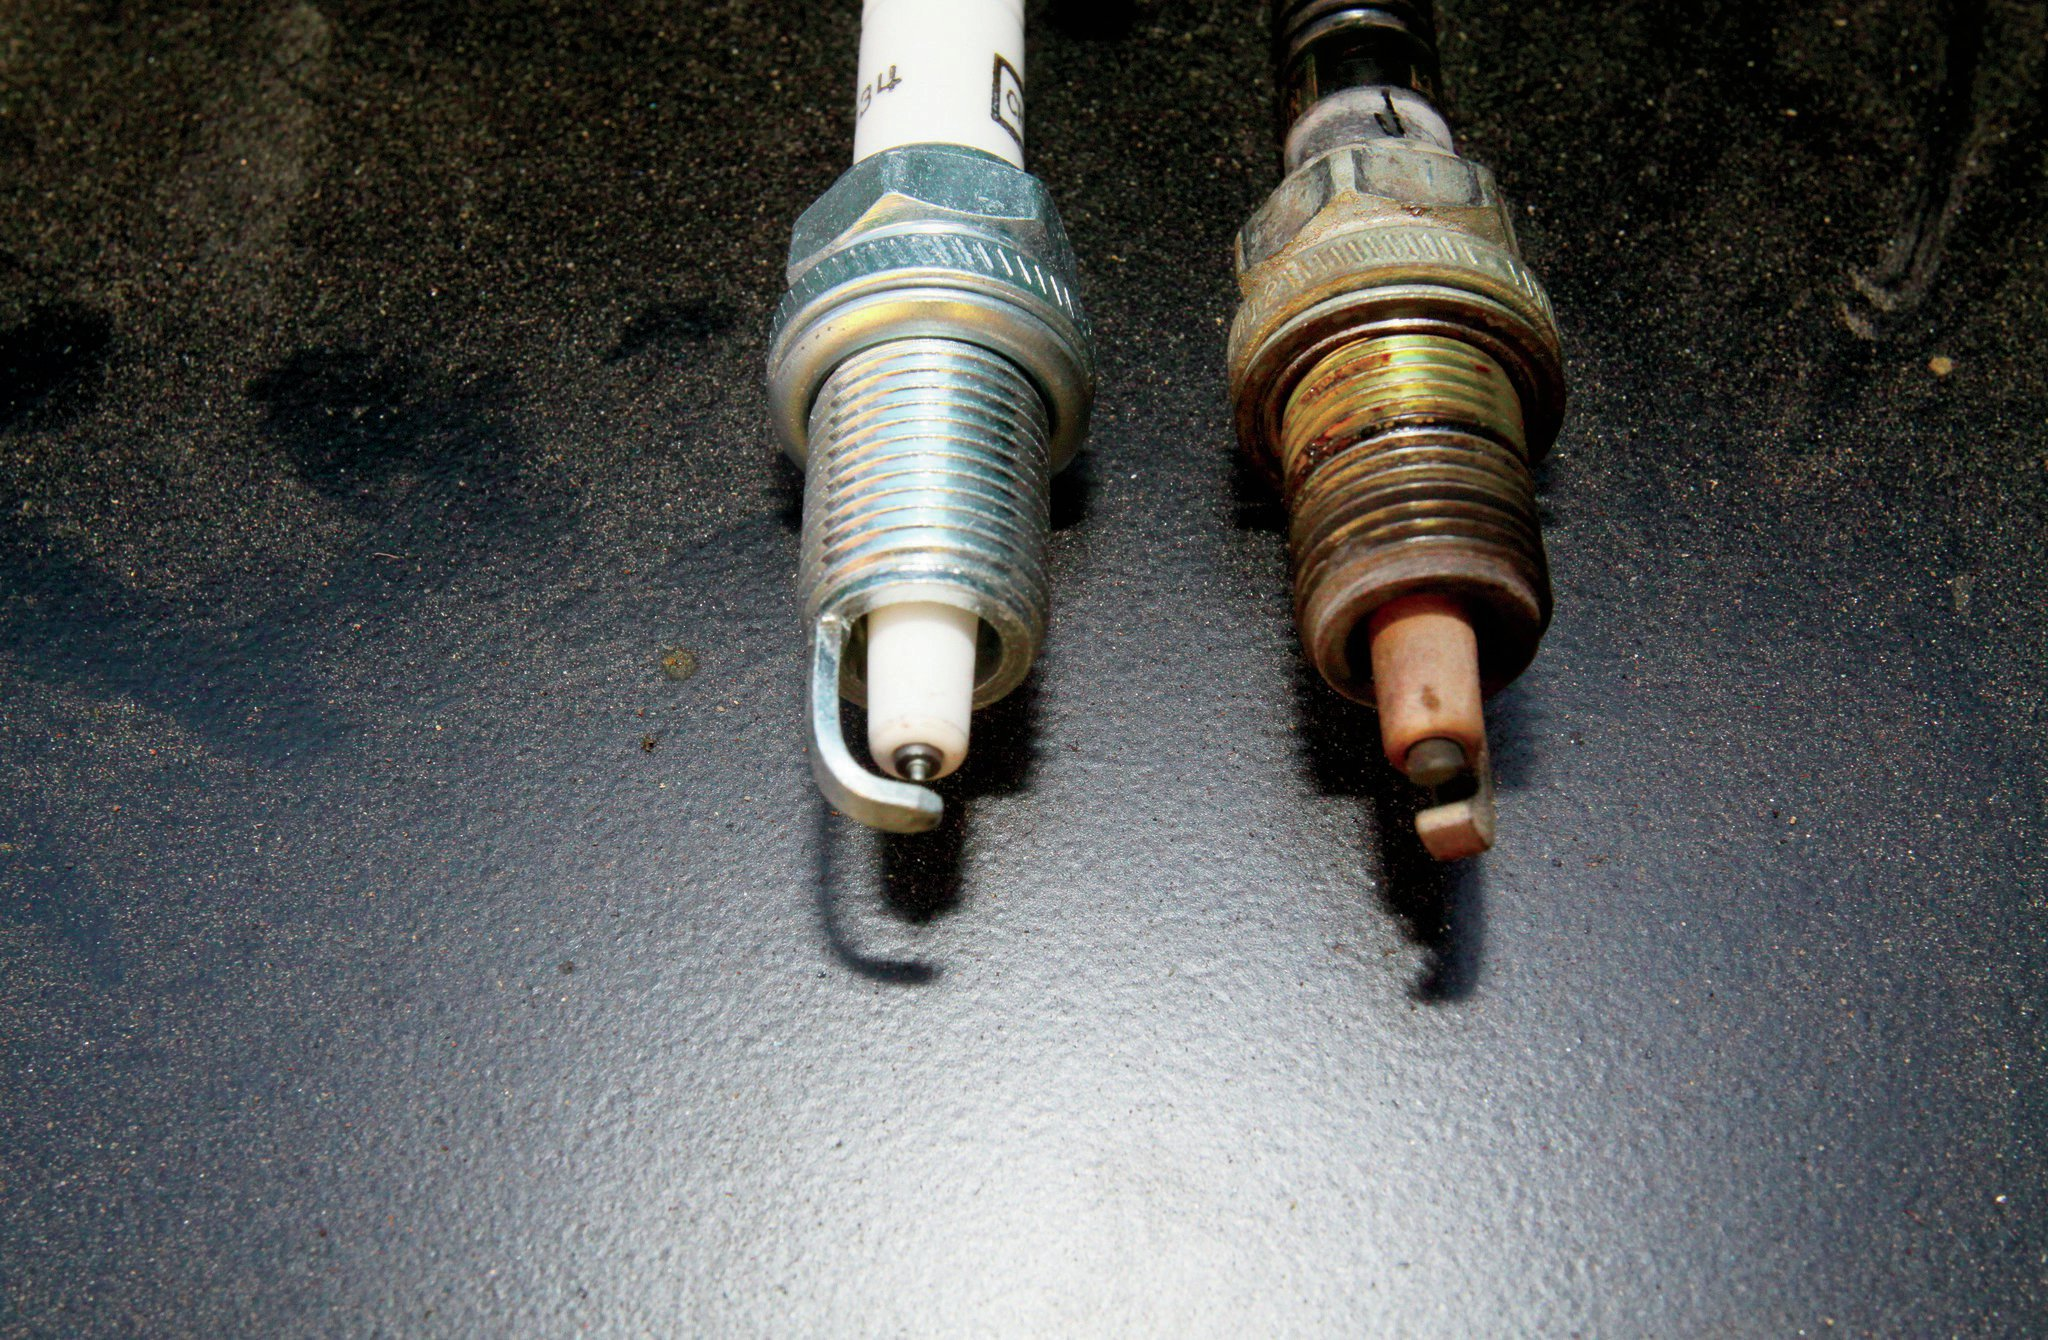 Since we had the new parts from DUI, we decided to go ahead and swap plugs too. While we do like the fancier plugs, when we use a DUI coil, we always just go with the regular Champion plugs (especially in a Jeep with 258,000 miles).